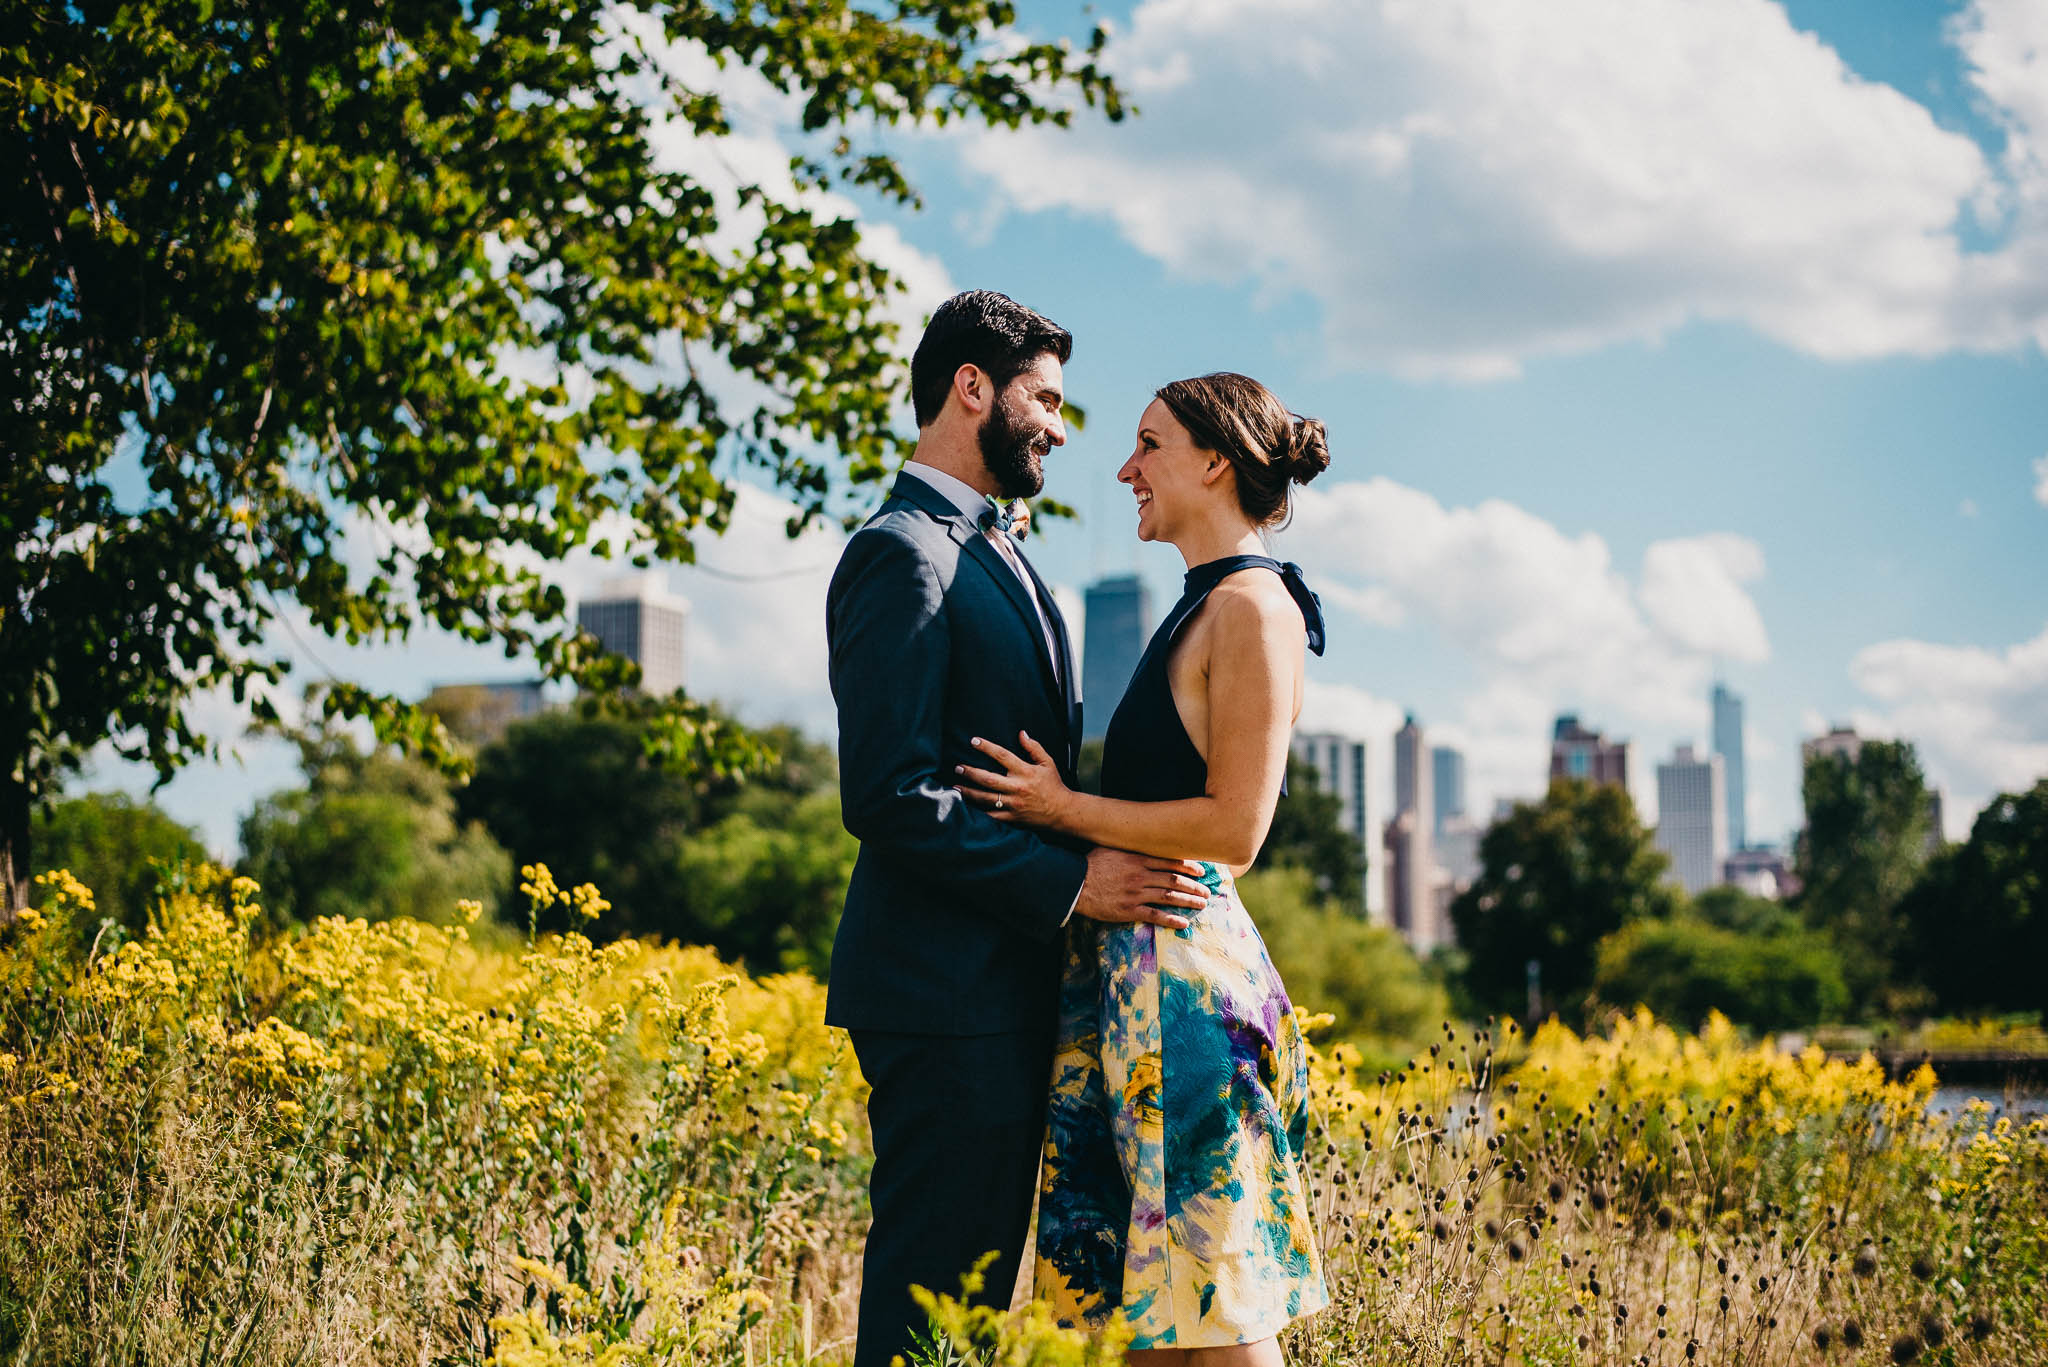 engaged couple posing in a Chicago park